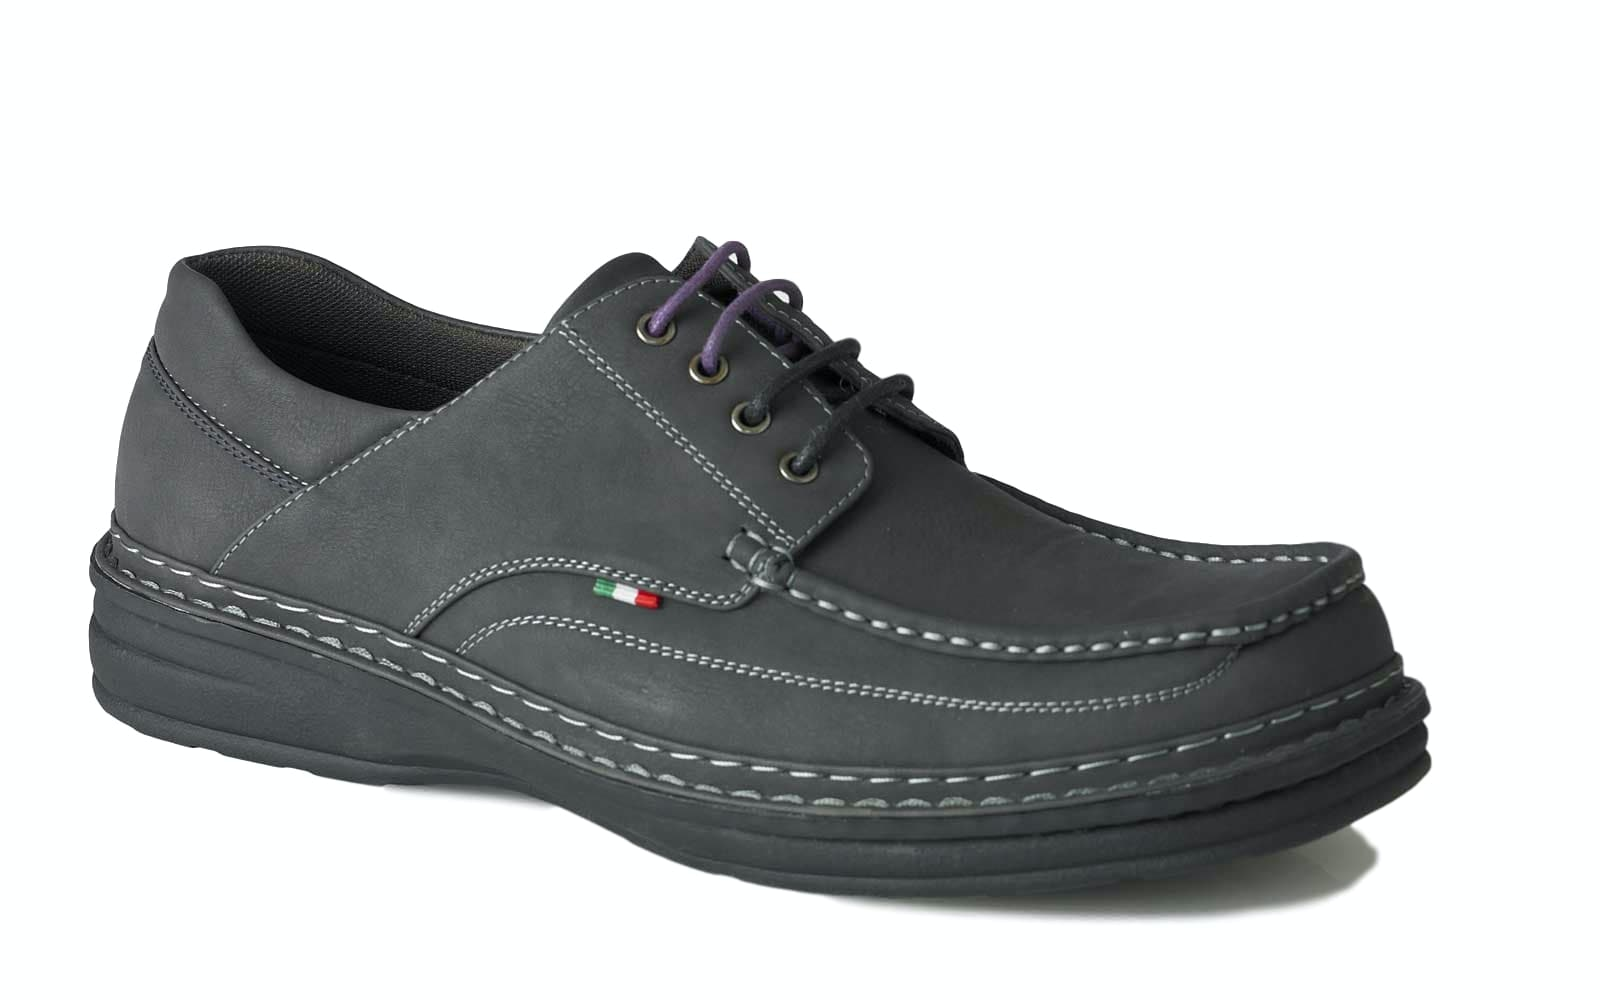 D555 Drake Casual Lace Up Shoe Black